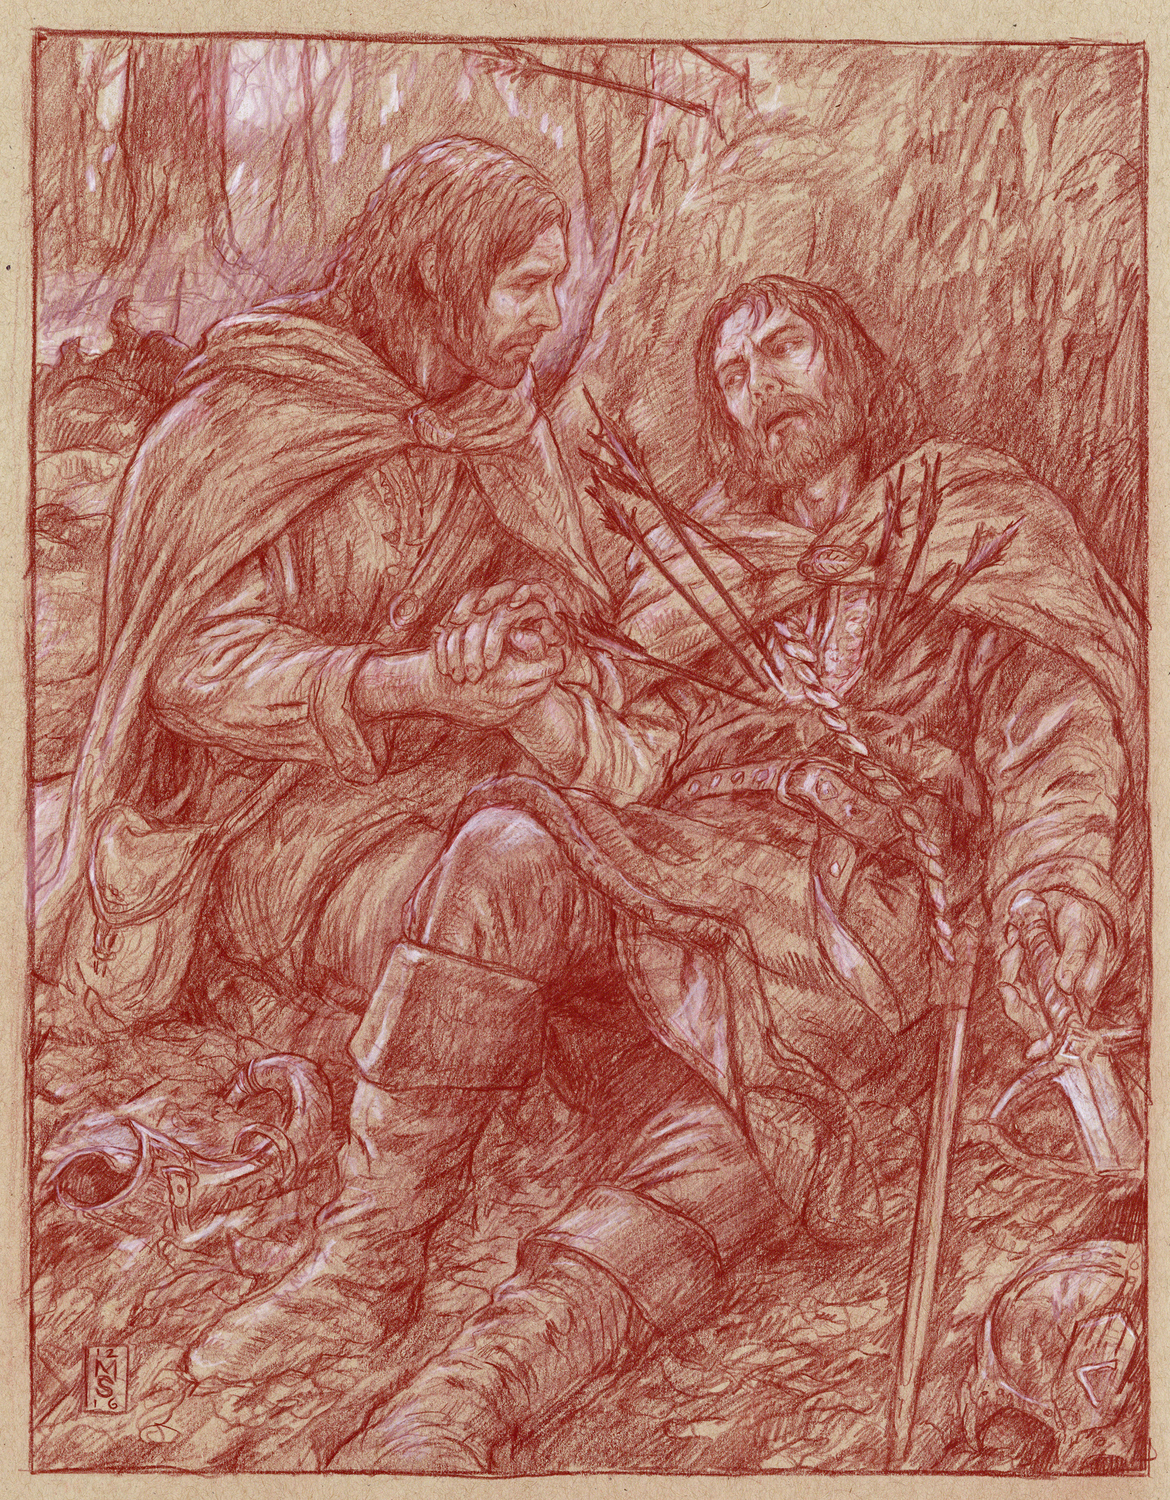 The Last Words of Boromir Artwork by Matthew Stewart